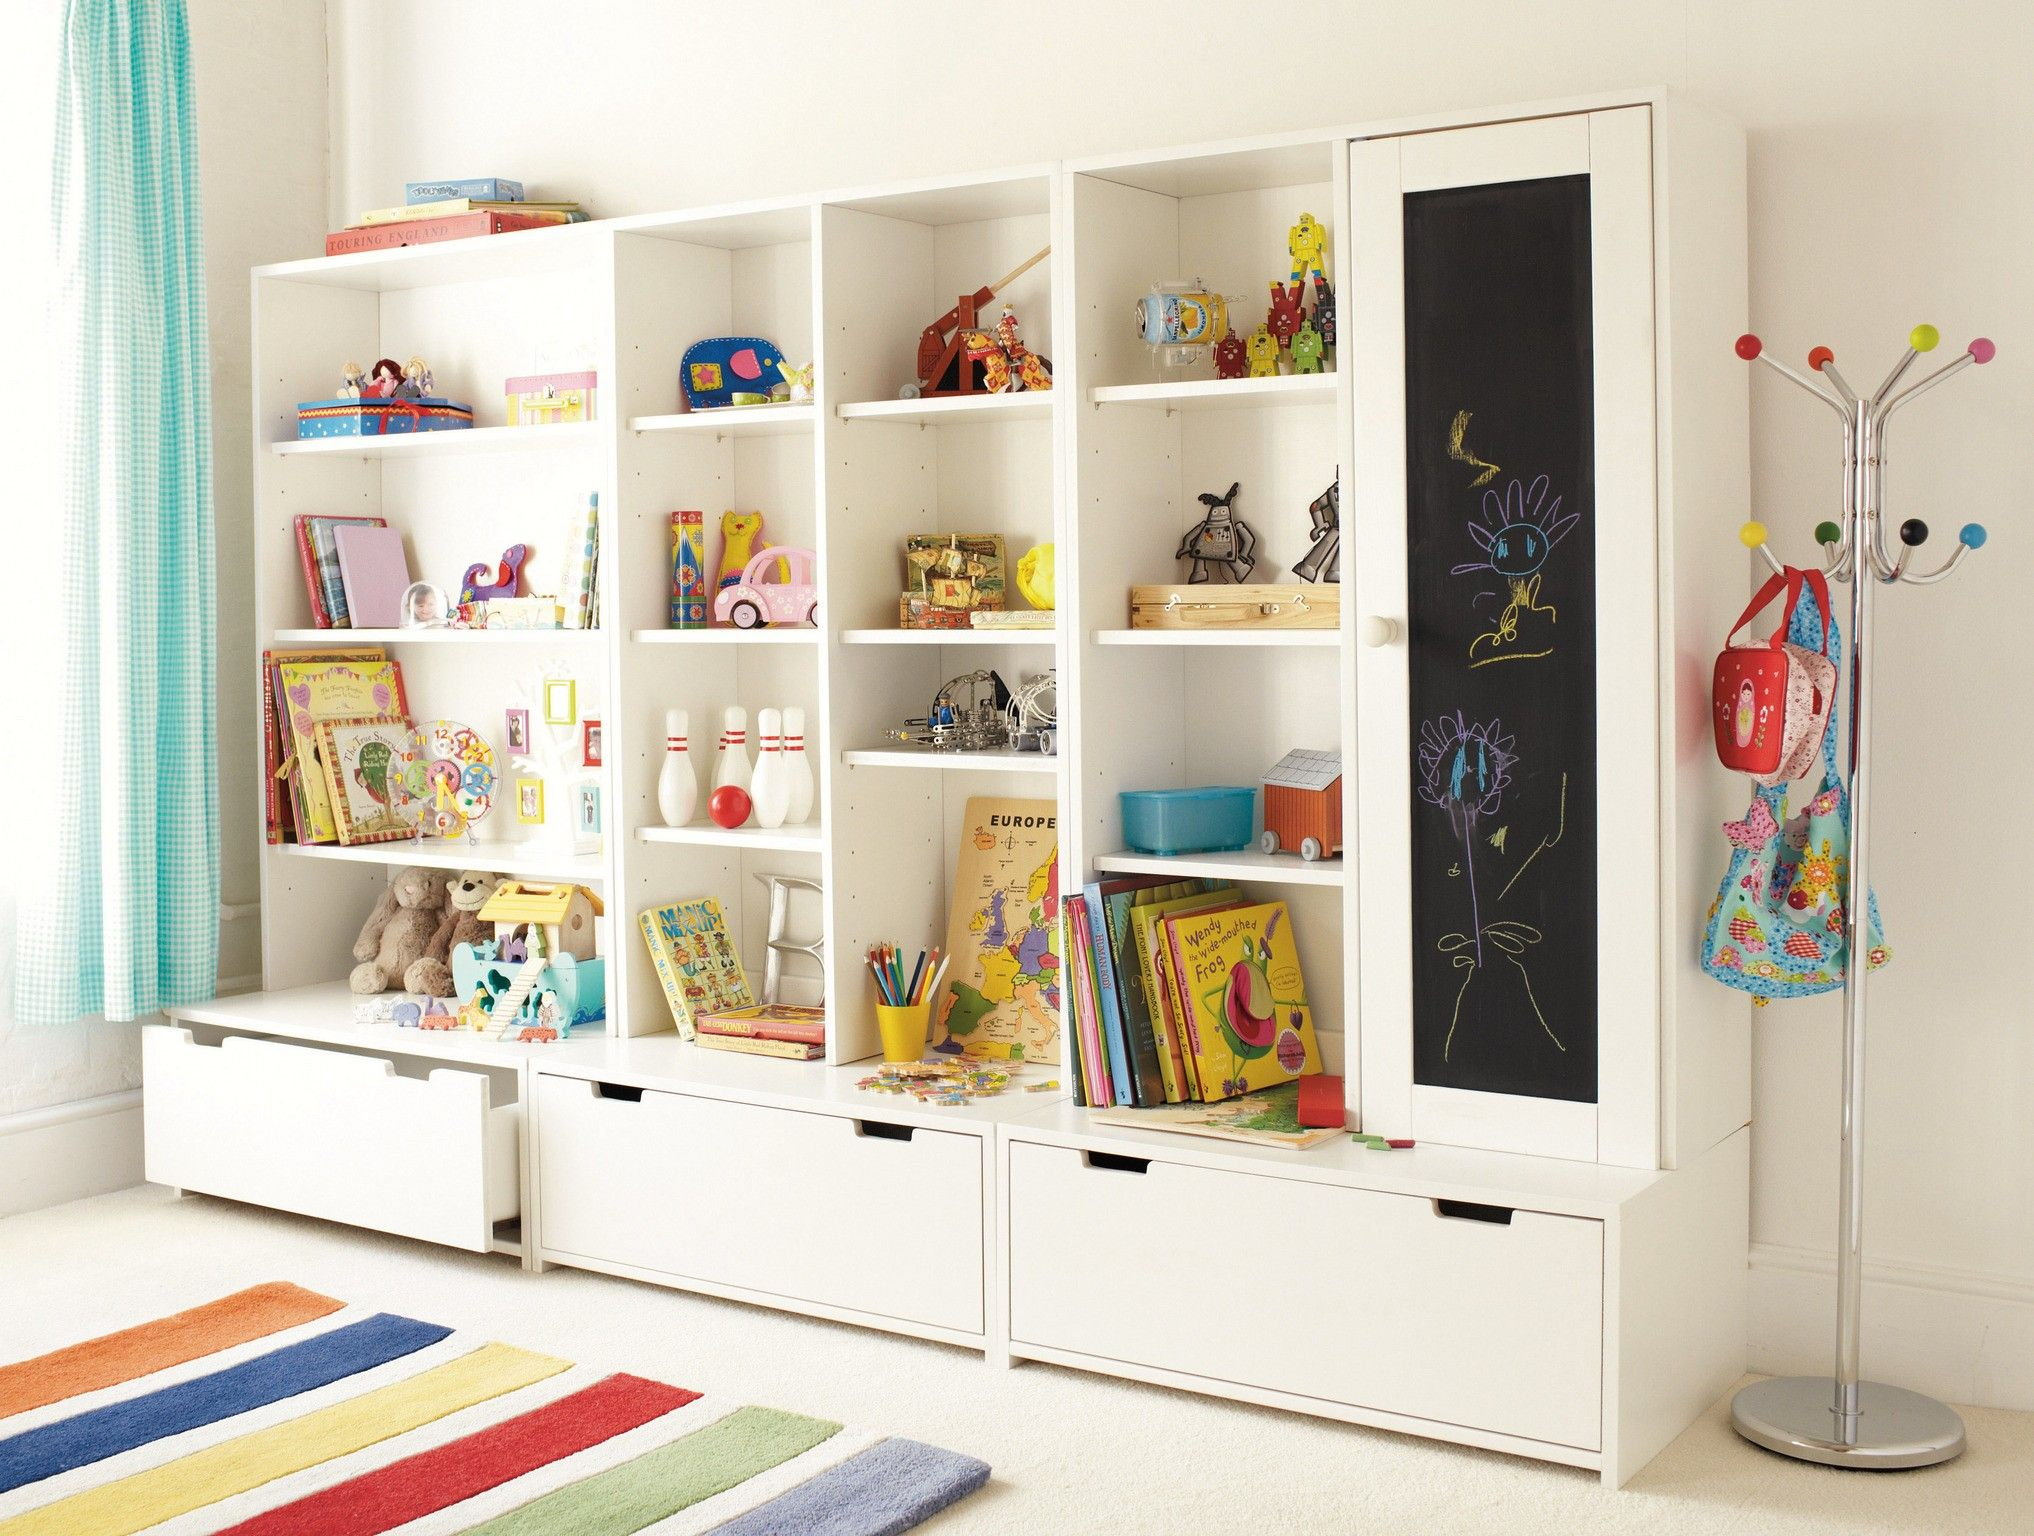 Appealing Playroom Storage Ideas Design With Large White Wall Shelf Cabinet And Drawer Also Free Standing S Storage Kids Room Toy Room Storage Ikea Toy Storage